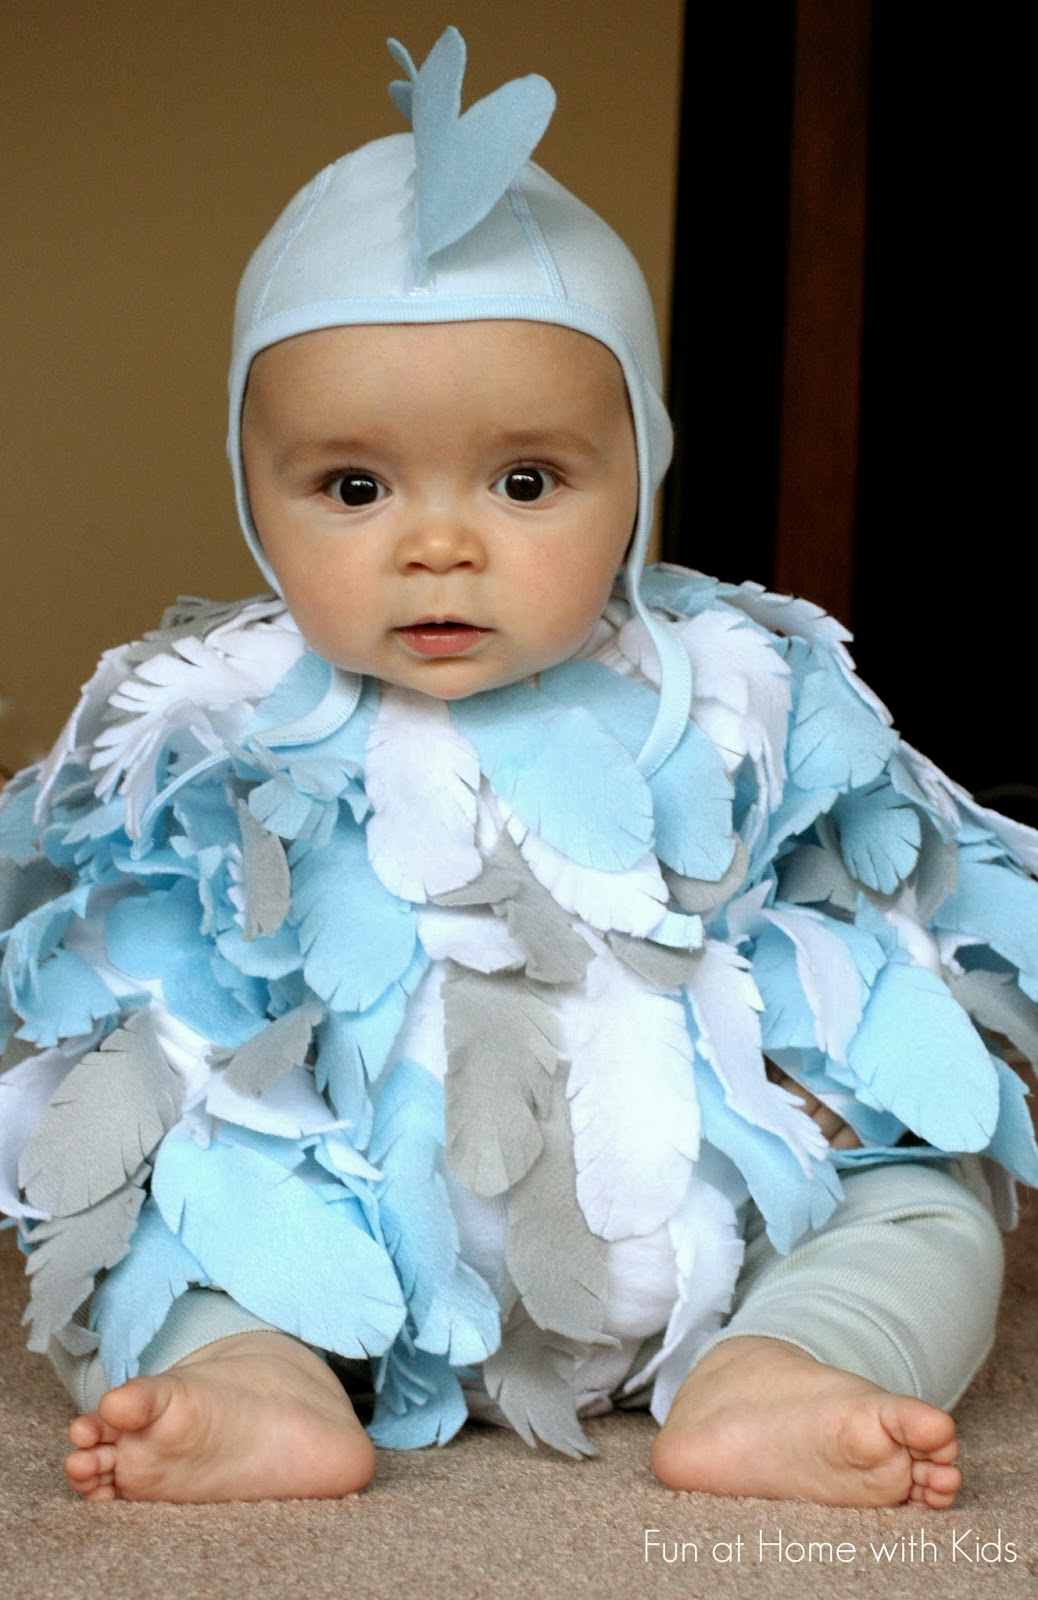 DIY No-Sew Baby Chicken Halloween Costume.  Took under 2 hours and cost under 2 dollars to make!  From Fun at Home with Kids